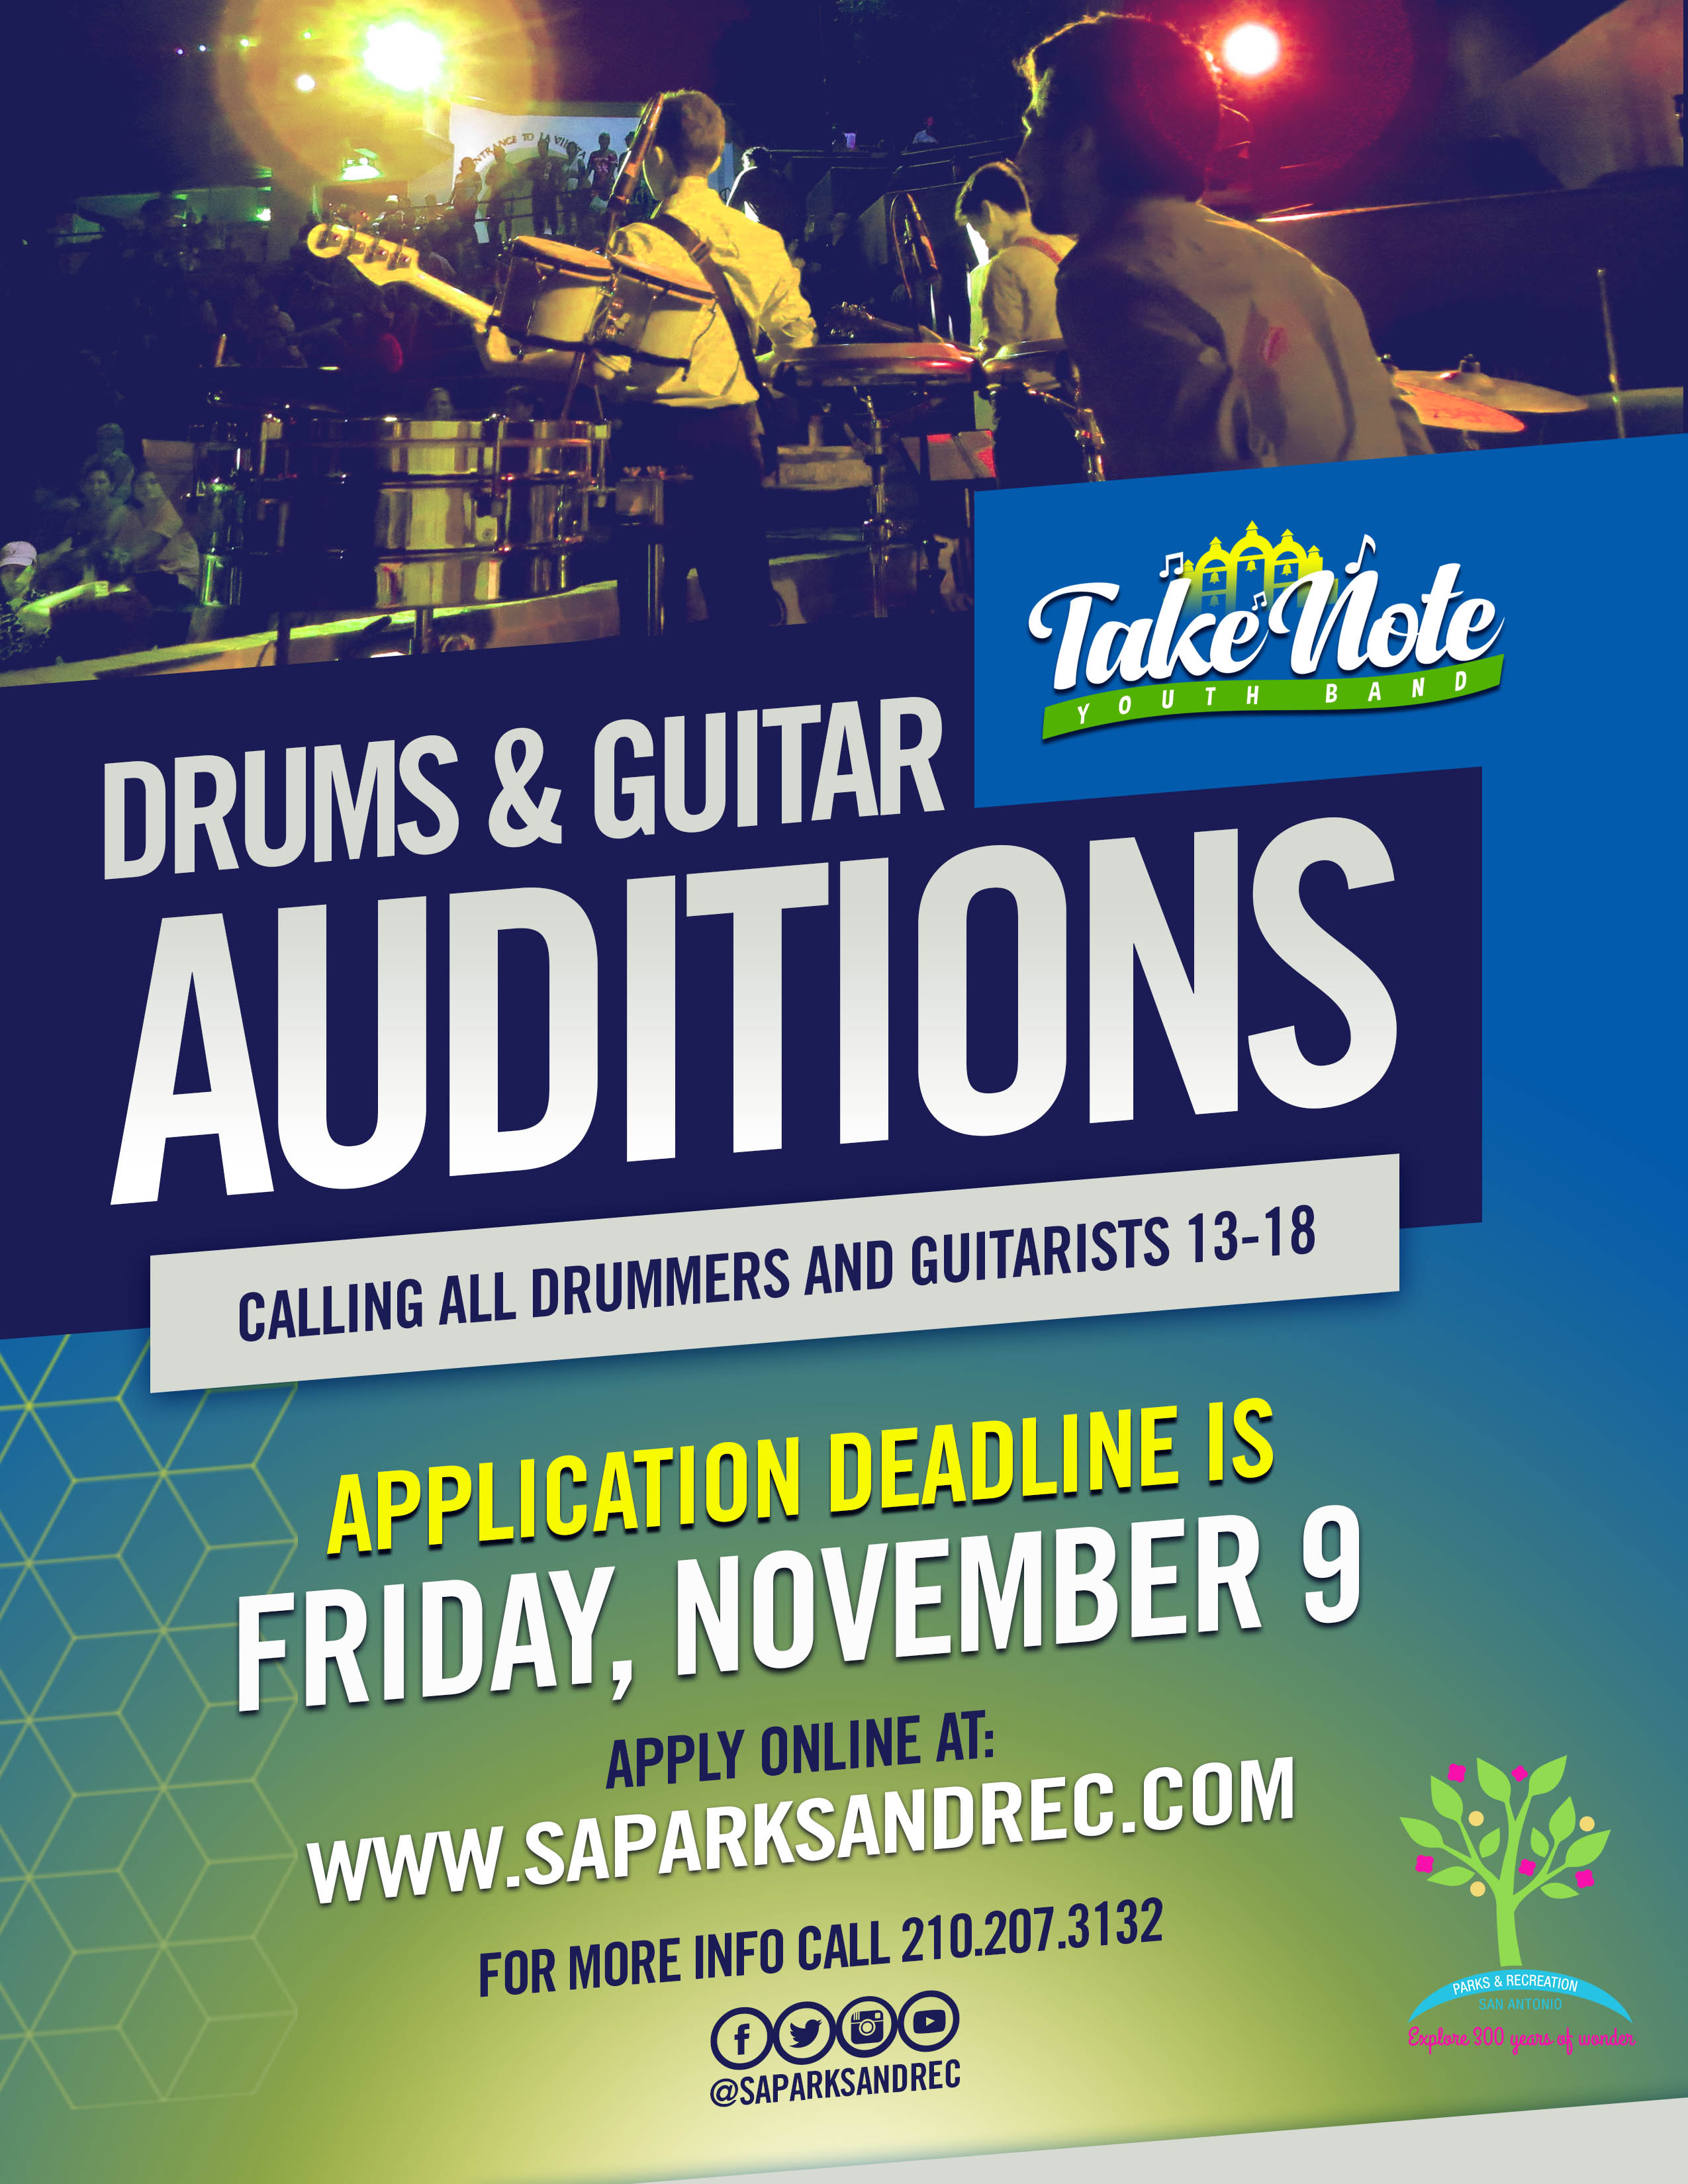 Take Note Youth Band Auditions - The City of San Antonio